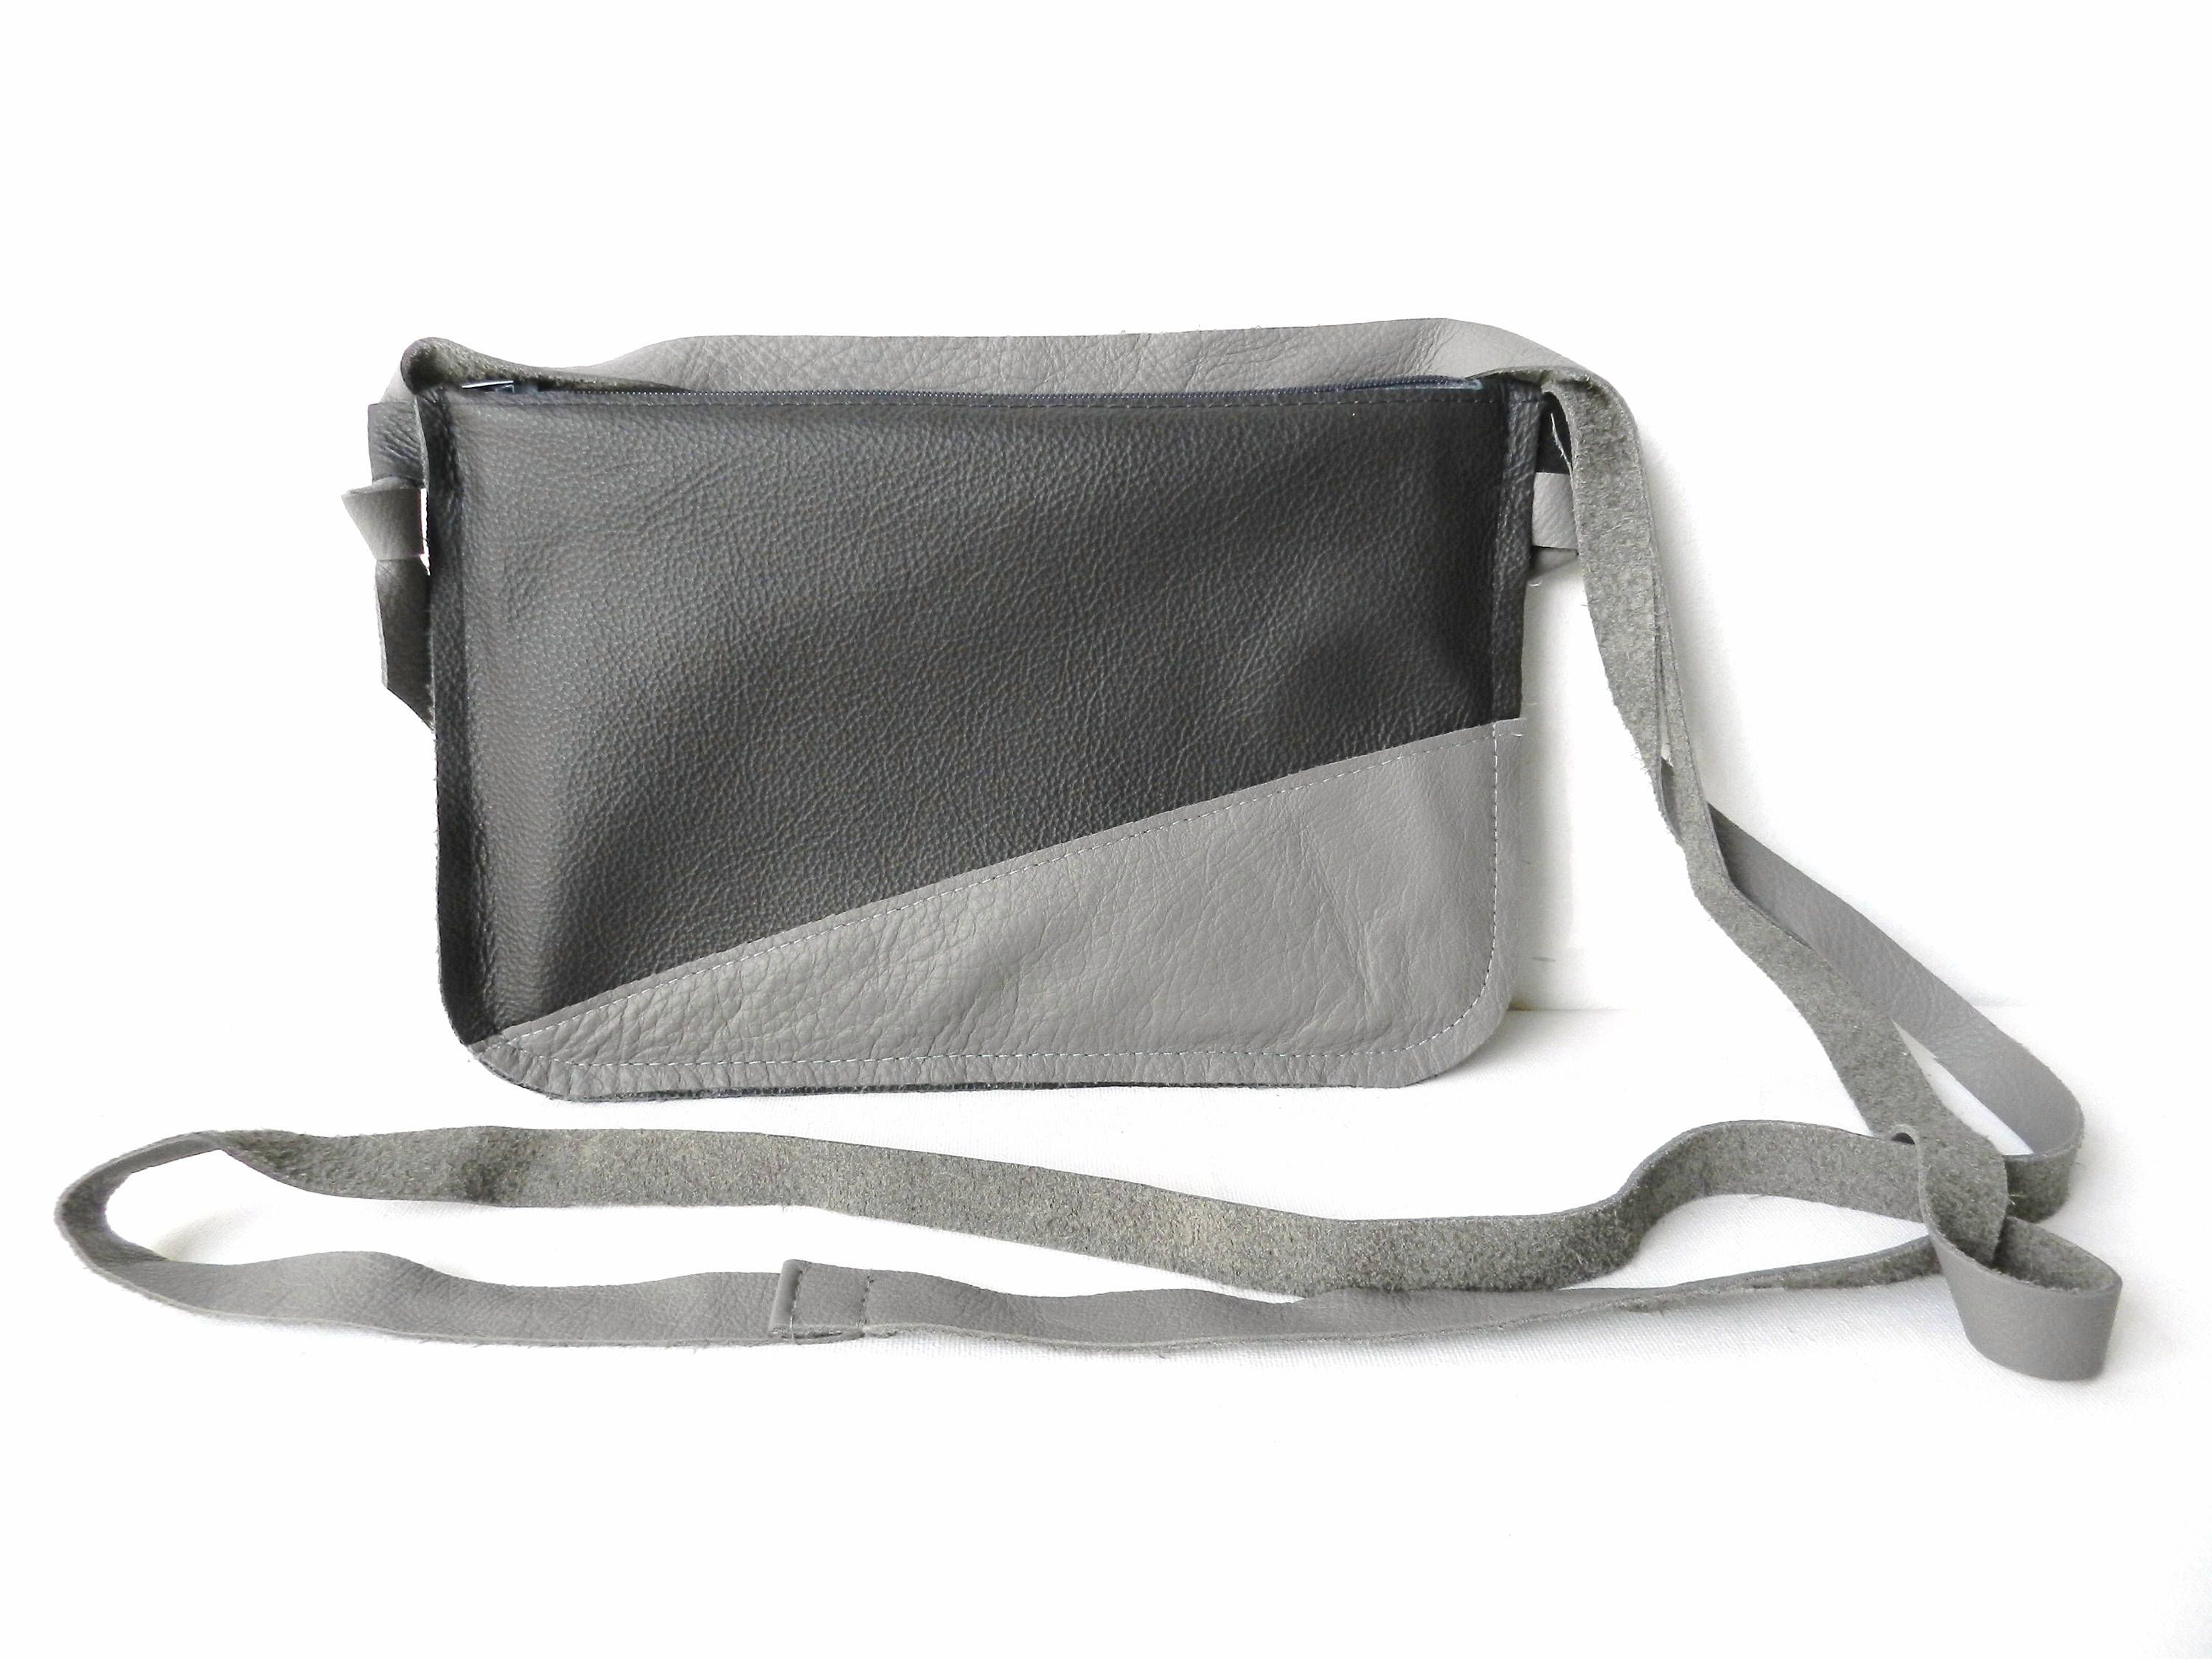 Verwonderend Leather Bag  Leather Crossbody  Grey Leather bag  Small Leather GC-72